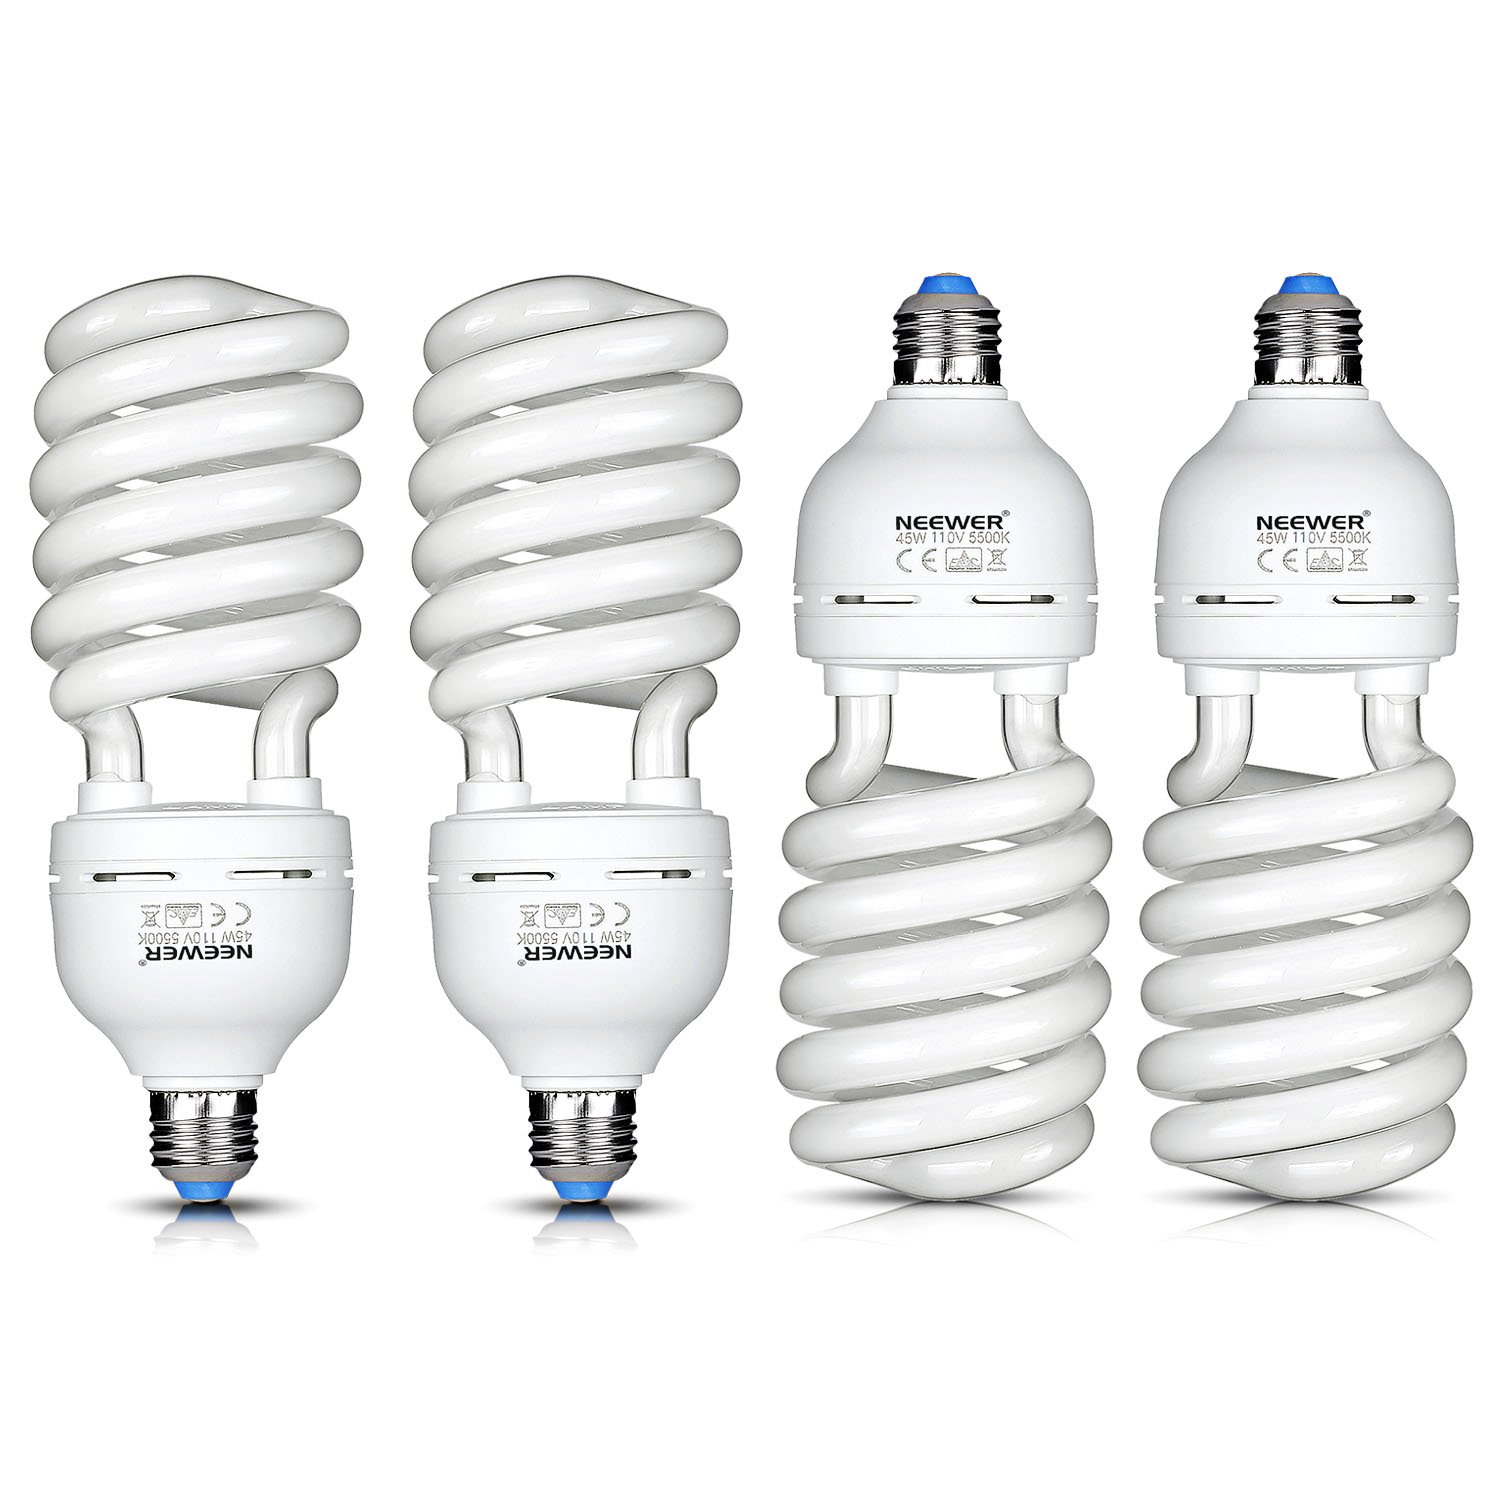 Neewer 4x 45W Energy Saving Tri-BAND Spiral CFL Photo Fluorescent Spiral Daylight Light Bulbs for Photo and Video Studio Lighting(4 Pack)